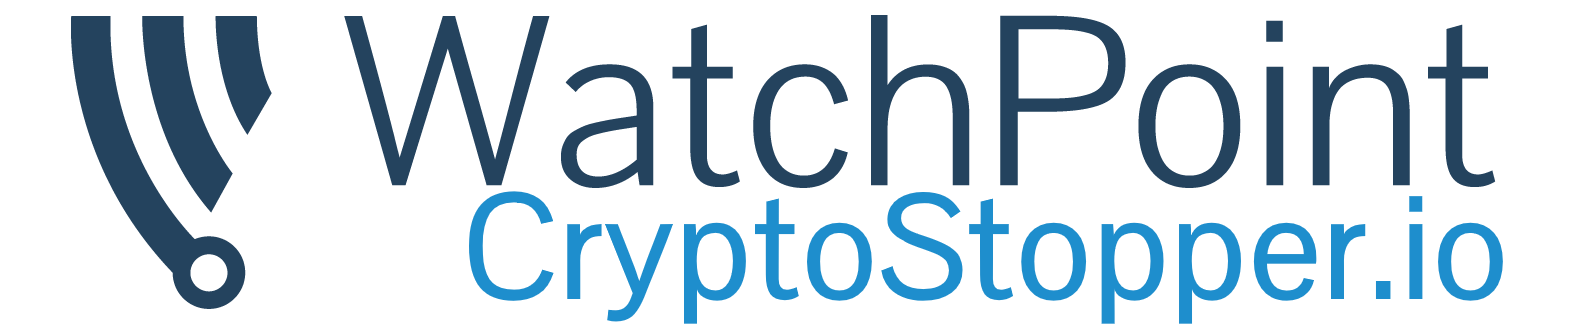 WatchPoint to Release CryptoStopper.io May 16th